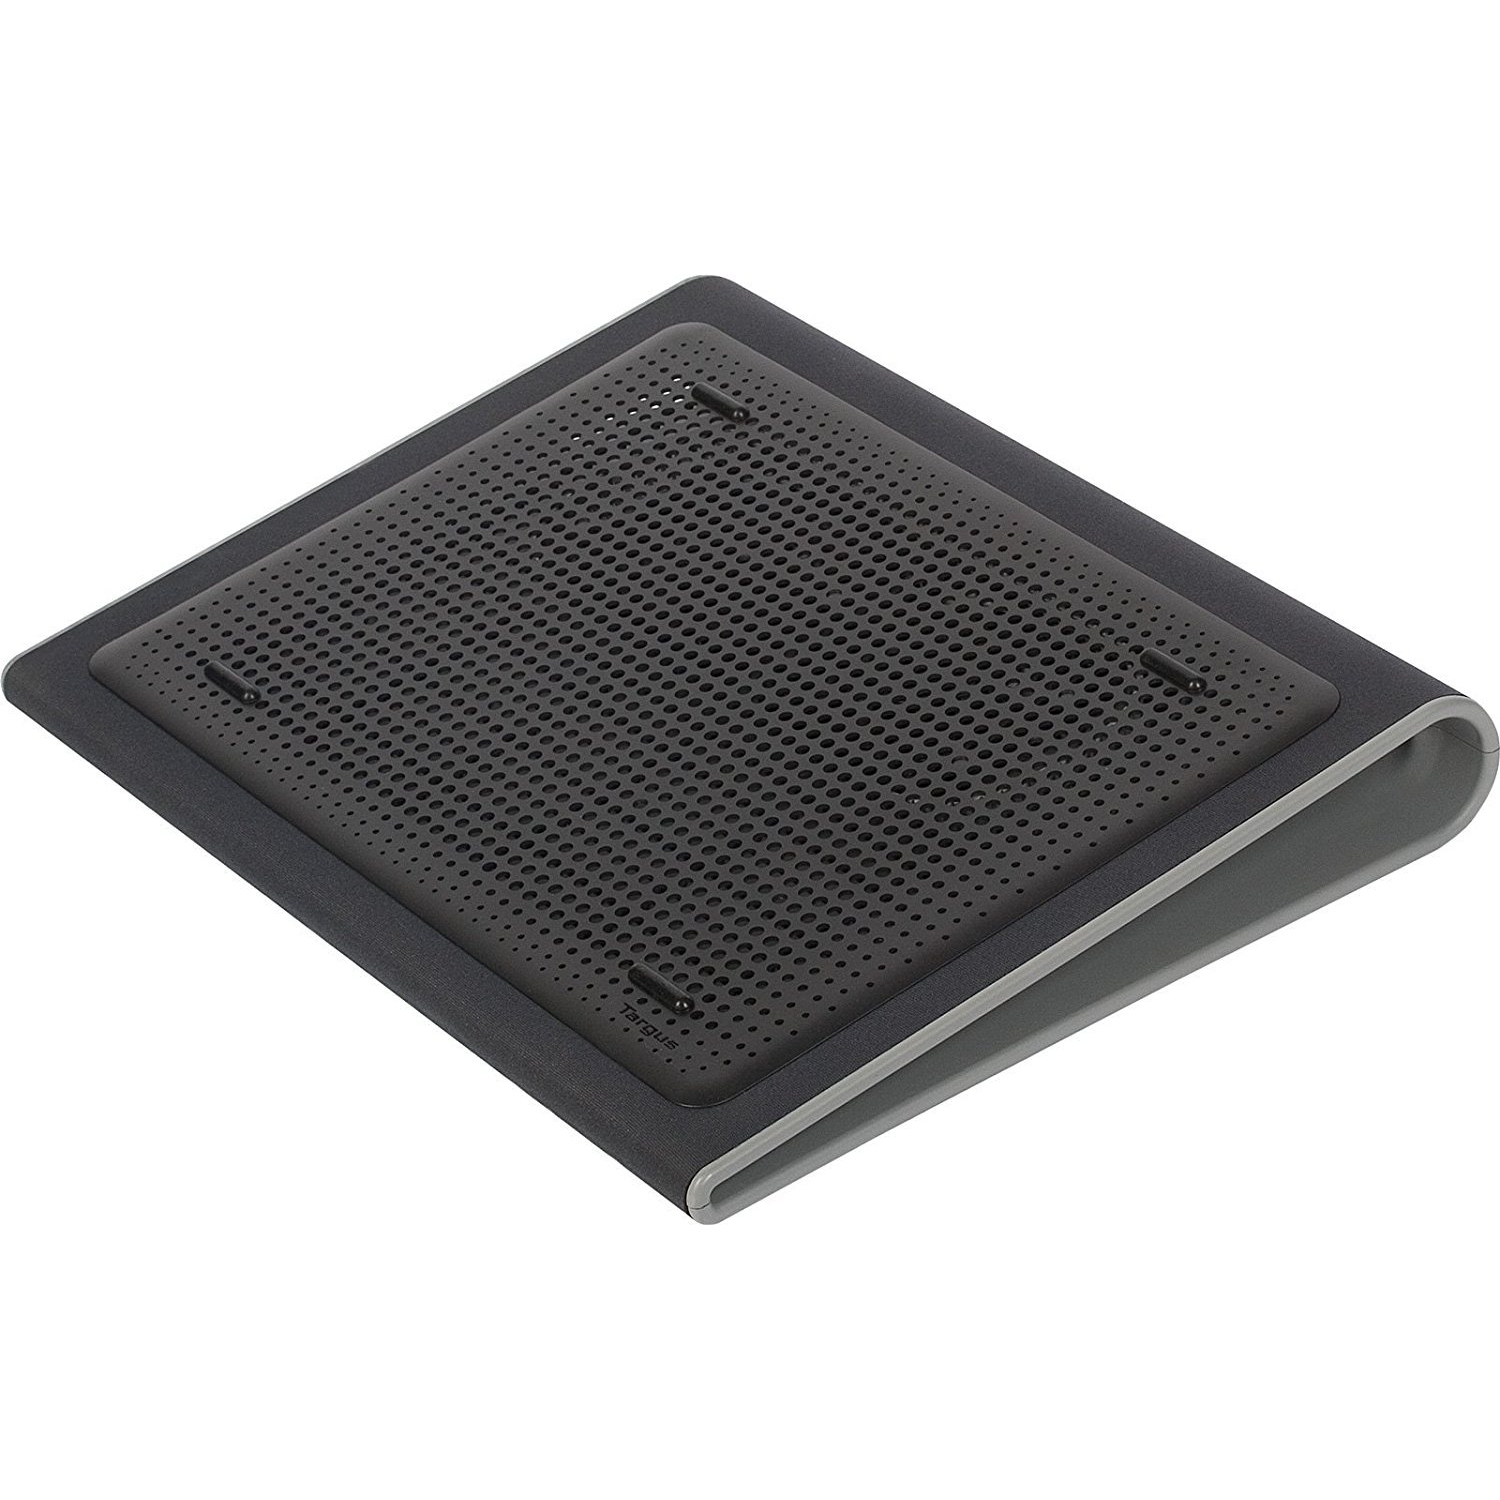 Laptop Computer Cooling Pad, Targus 15-inch Portable Cool Mat For Laptop,  Black